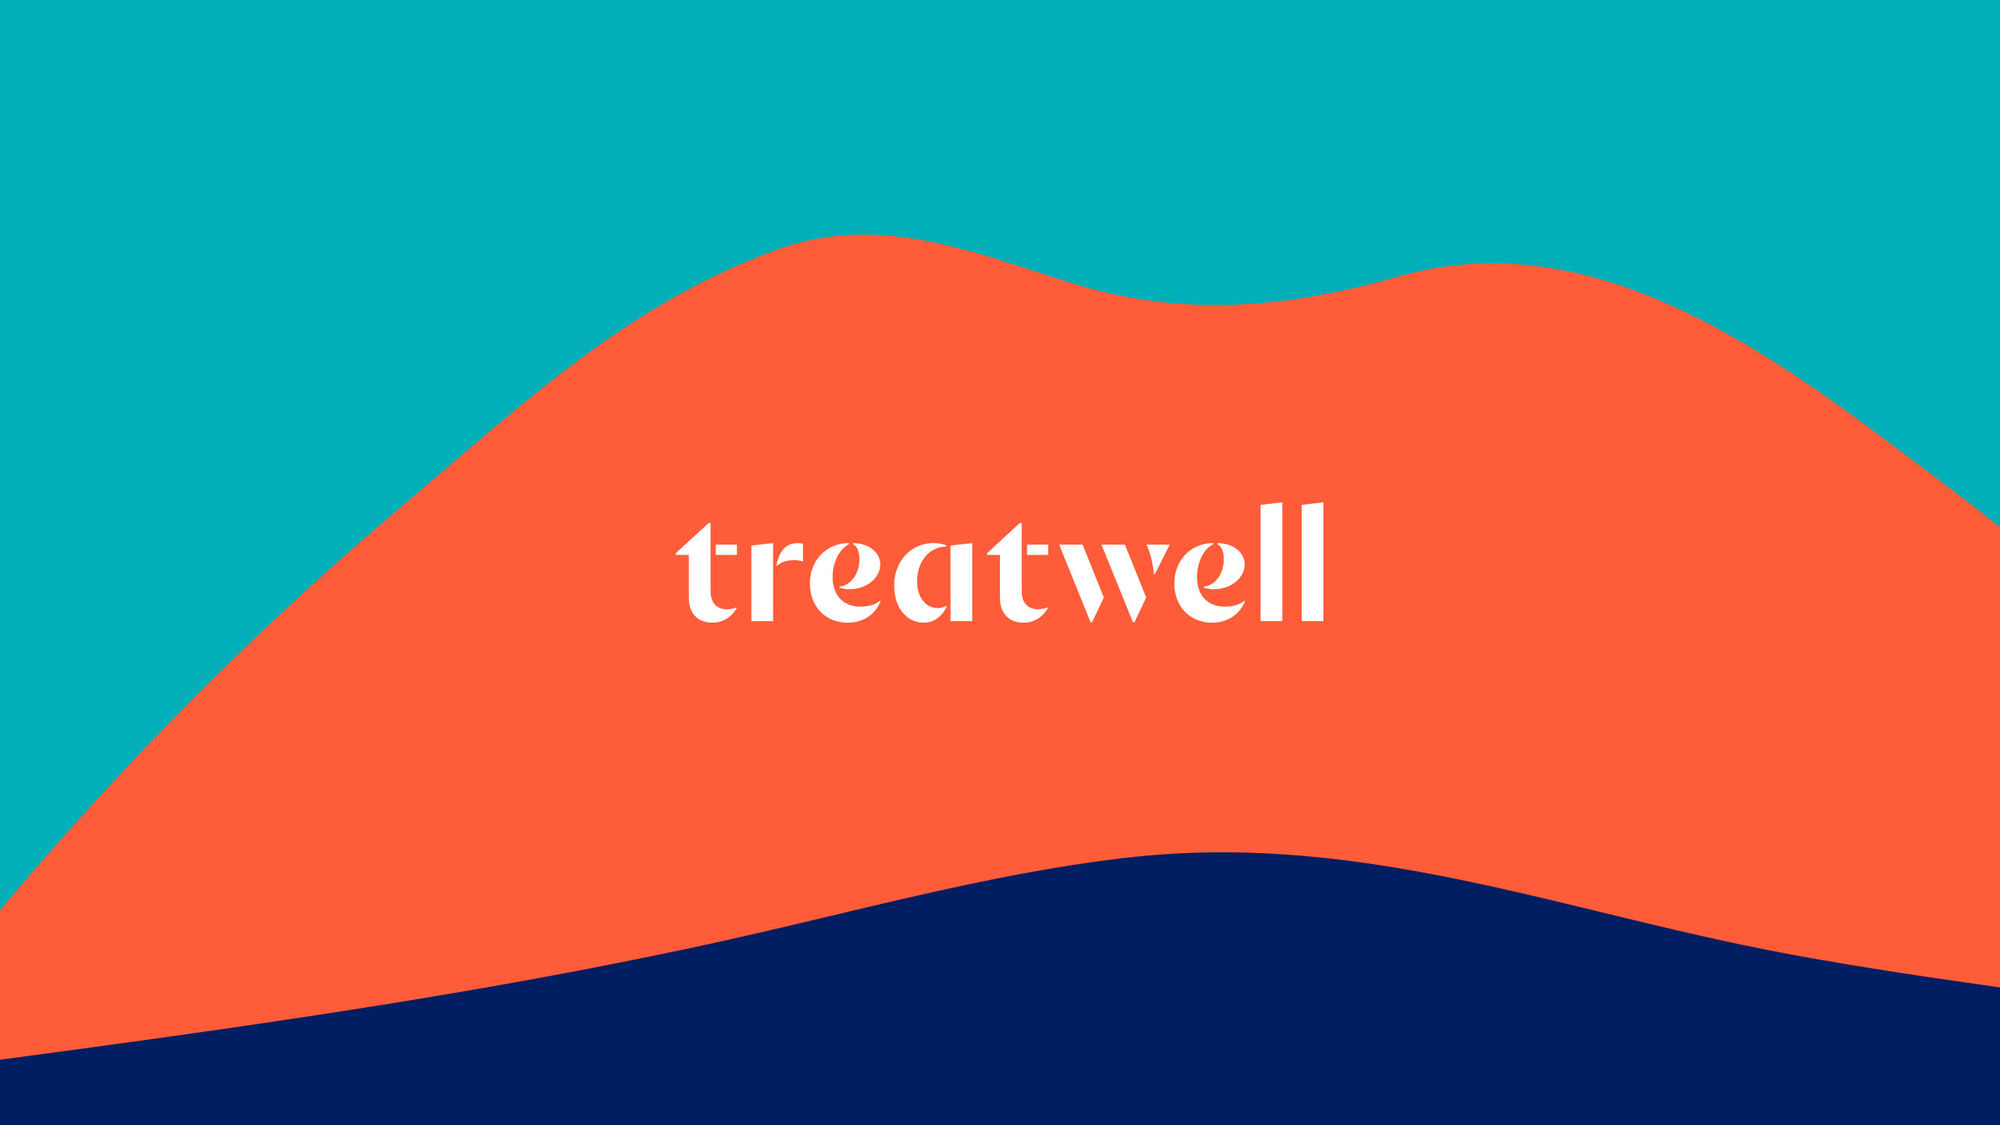 Treatwell Custom Typeface